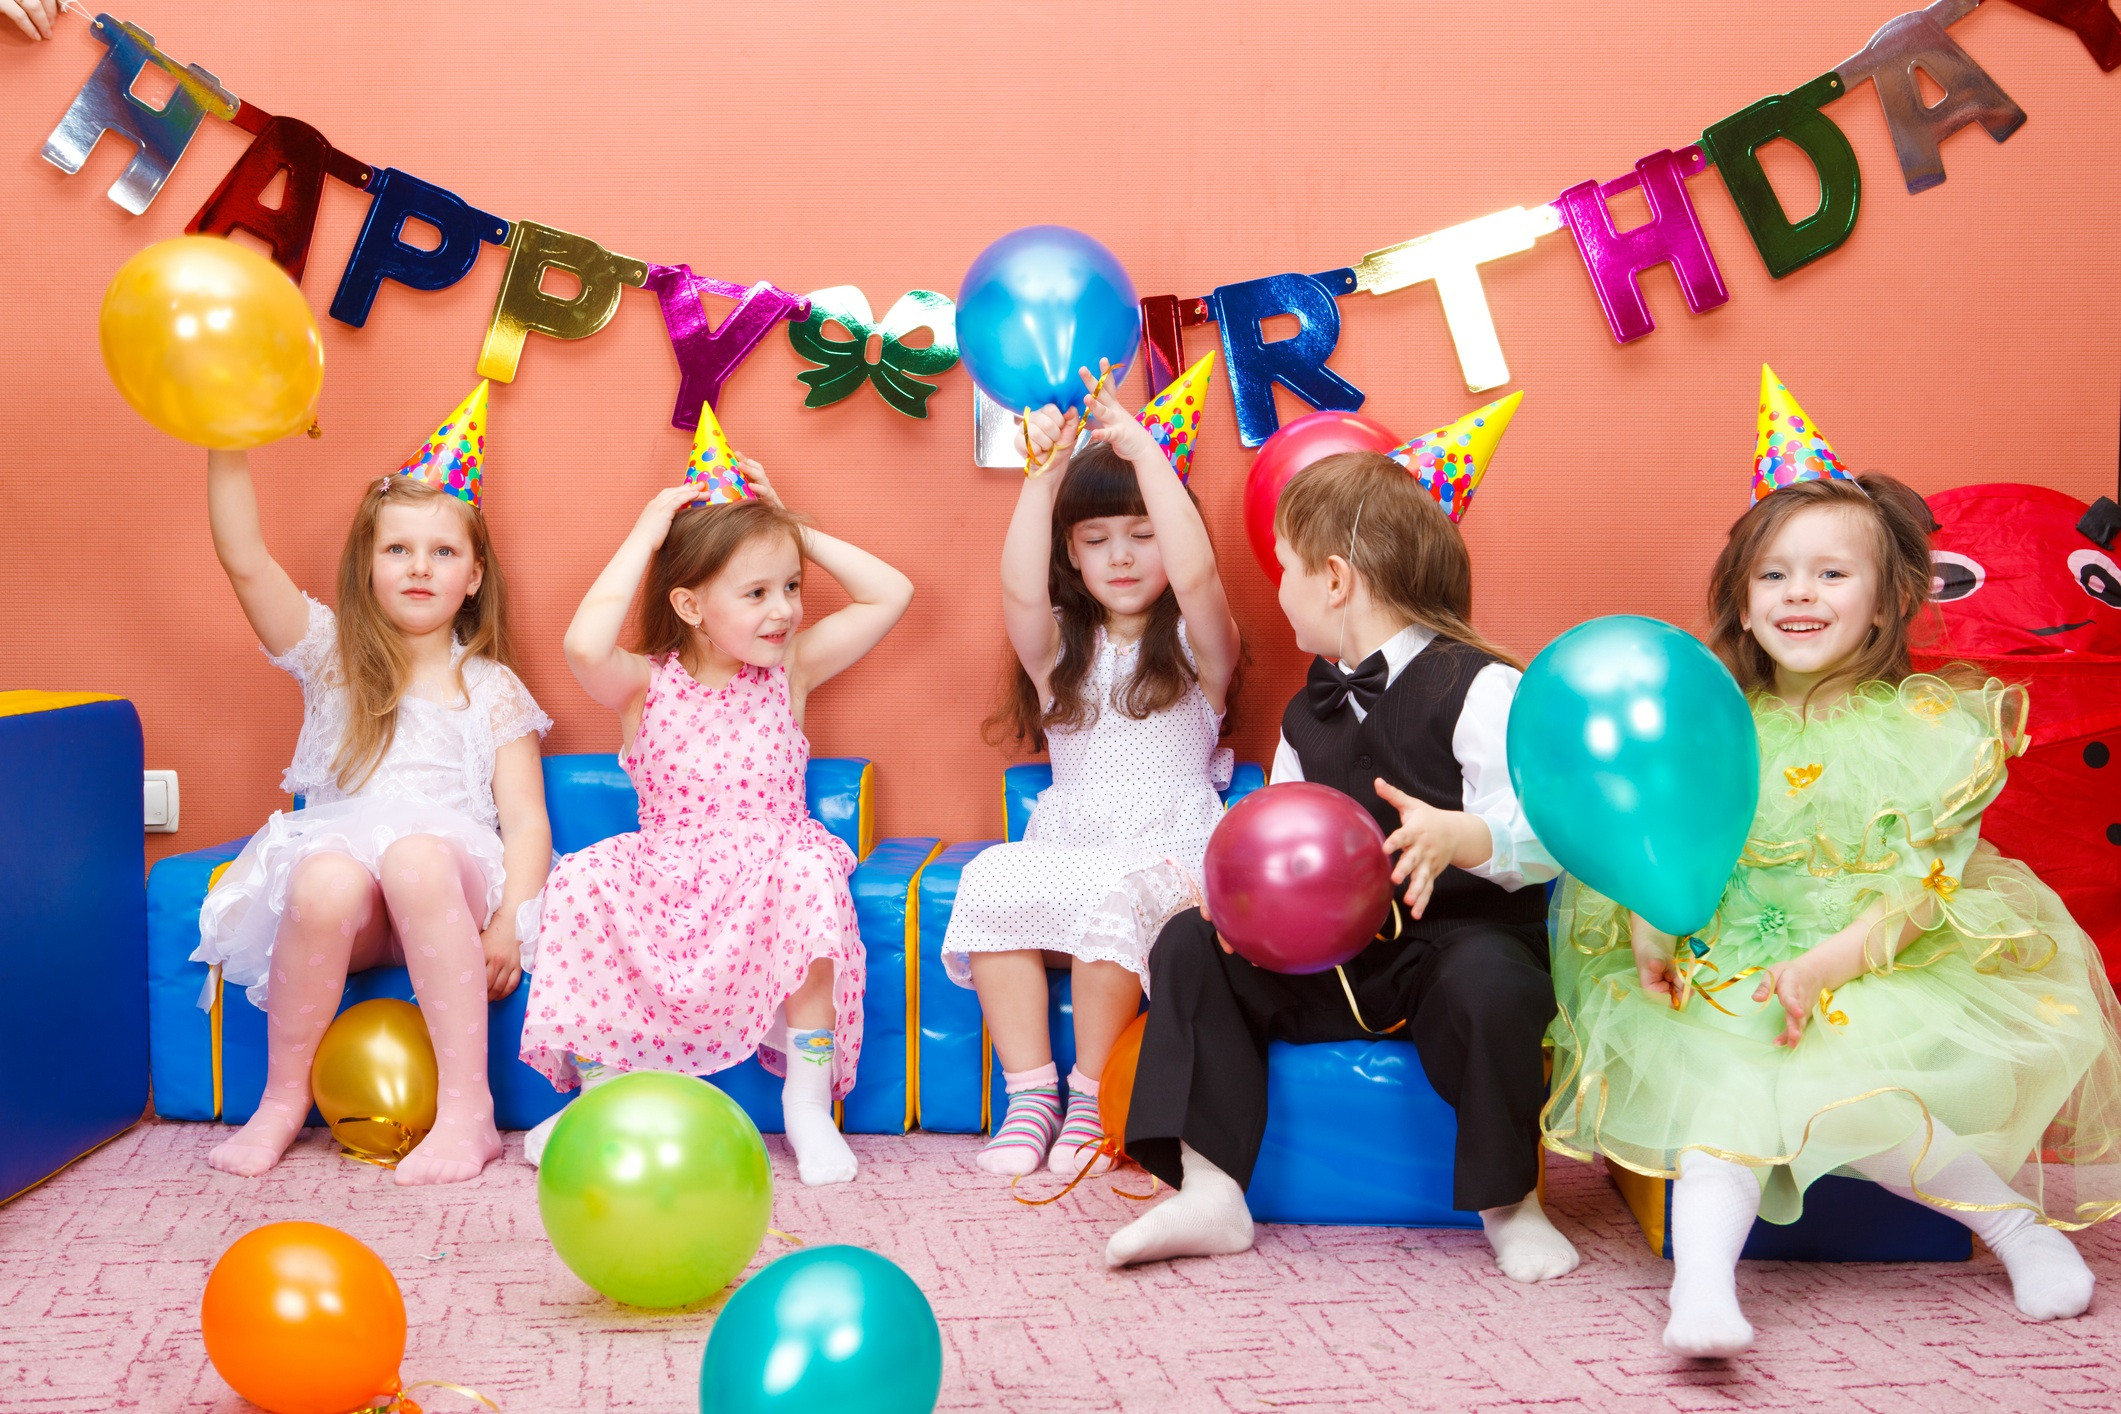 Best ideas about 12 Year Old Birthday Party . Save or Pin 45 Awesome 11 & 12 Year Old Birthday Party Ideas Now.